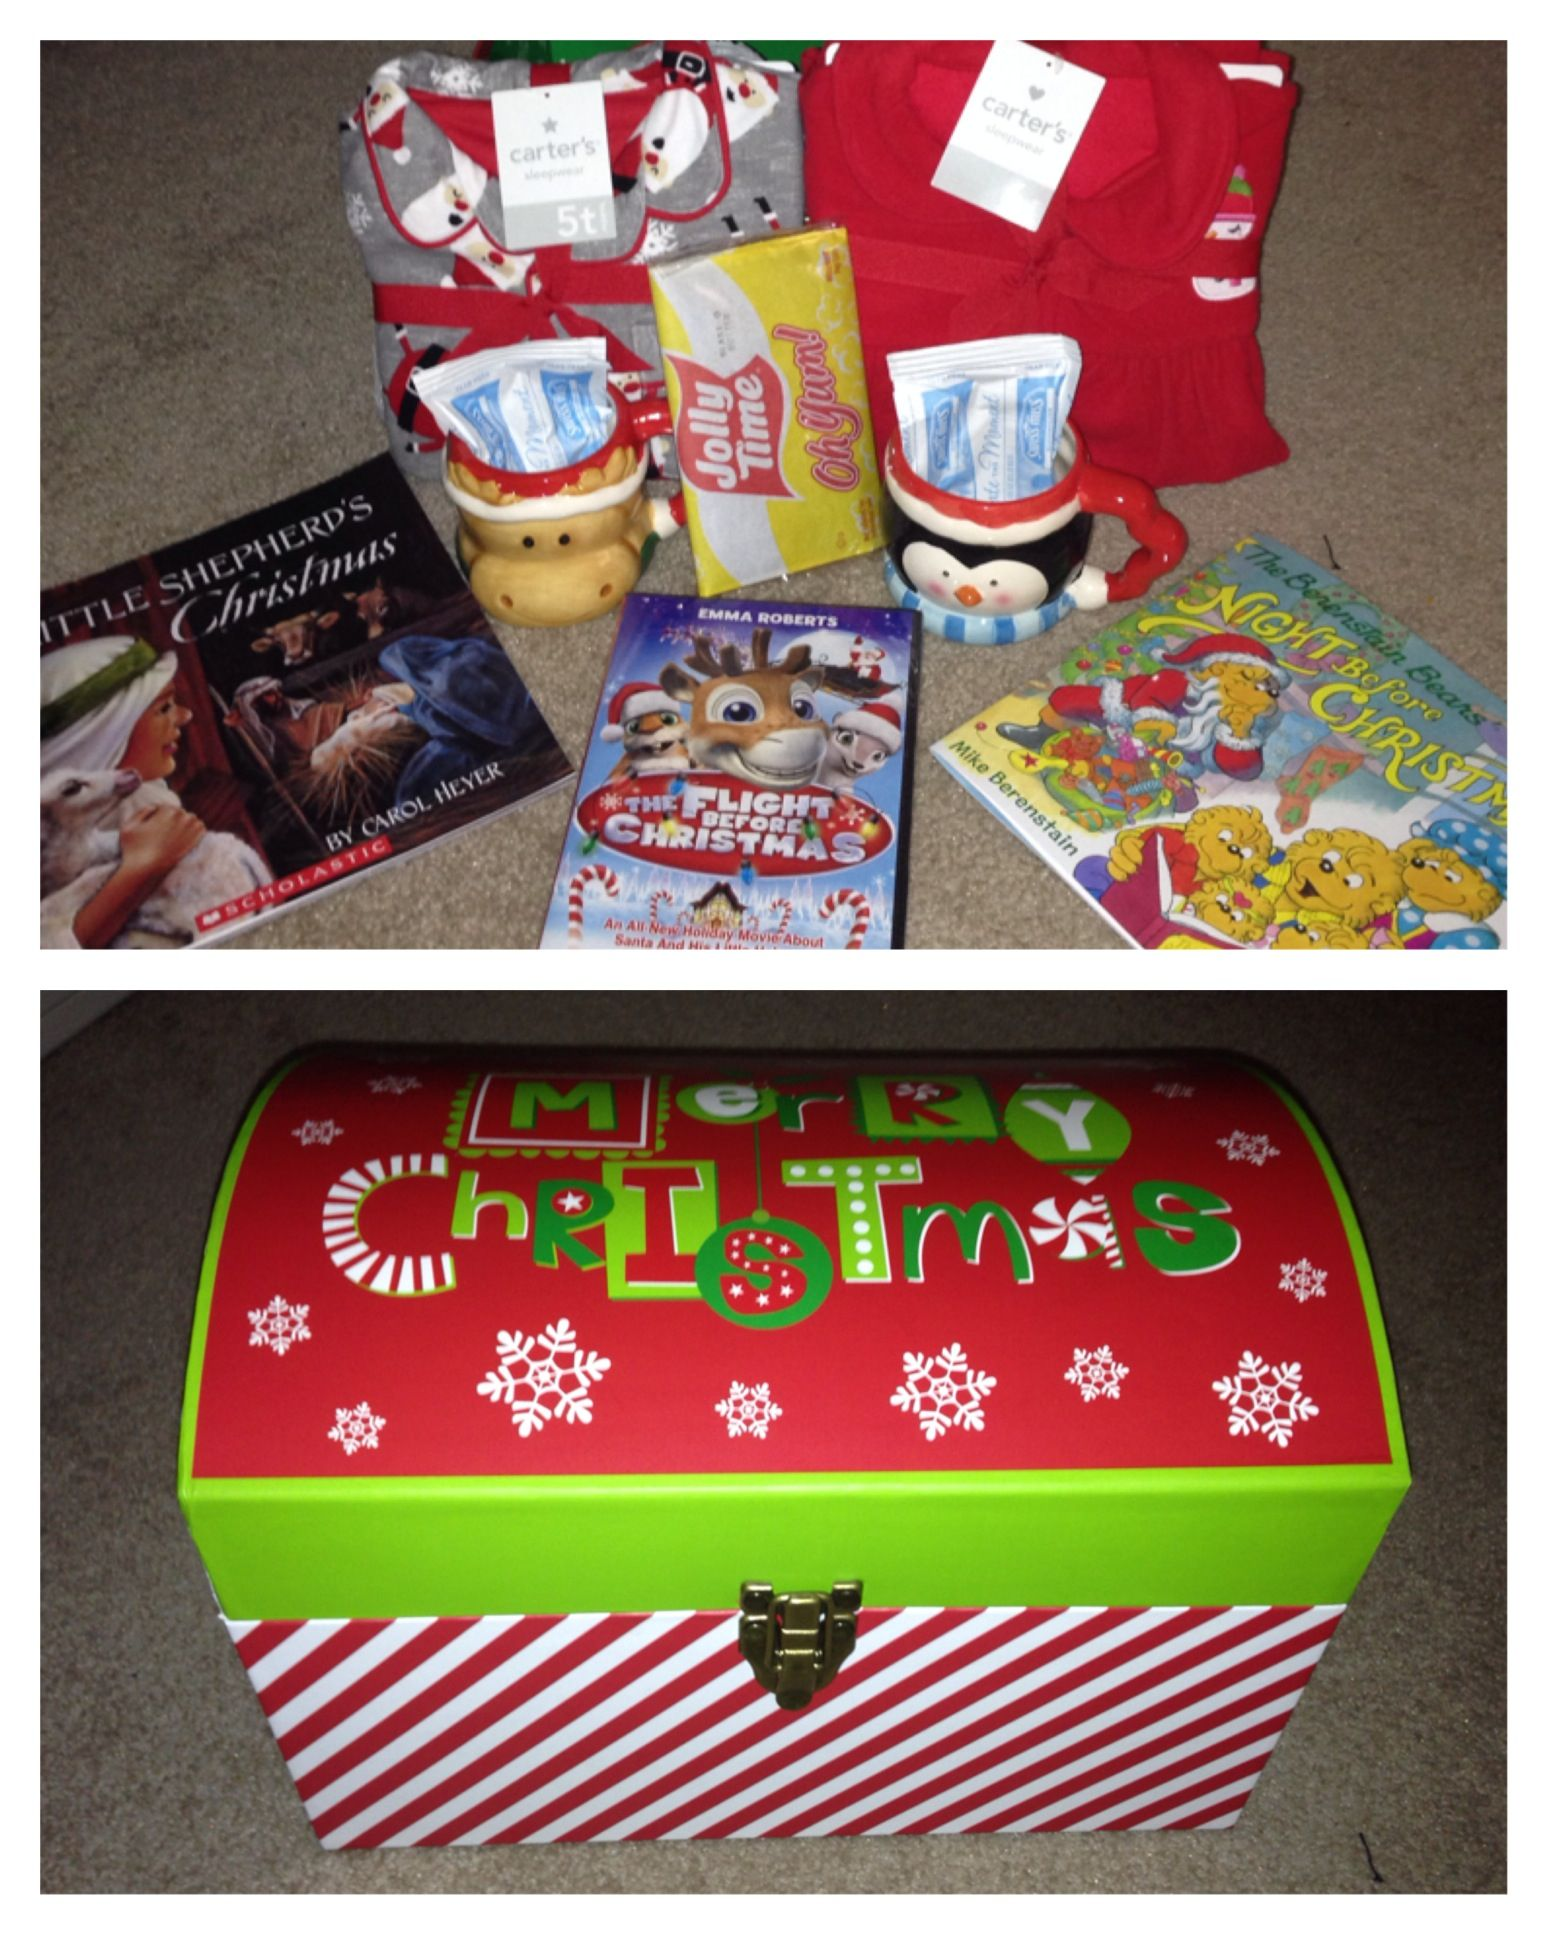 christmas eve box found the chest at hobby lobby and filled it with new christmas pjs books a movie hot chocolate new mugs and popcorn new tradition - Hobby Lobby Hours Christmas Eve